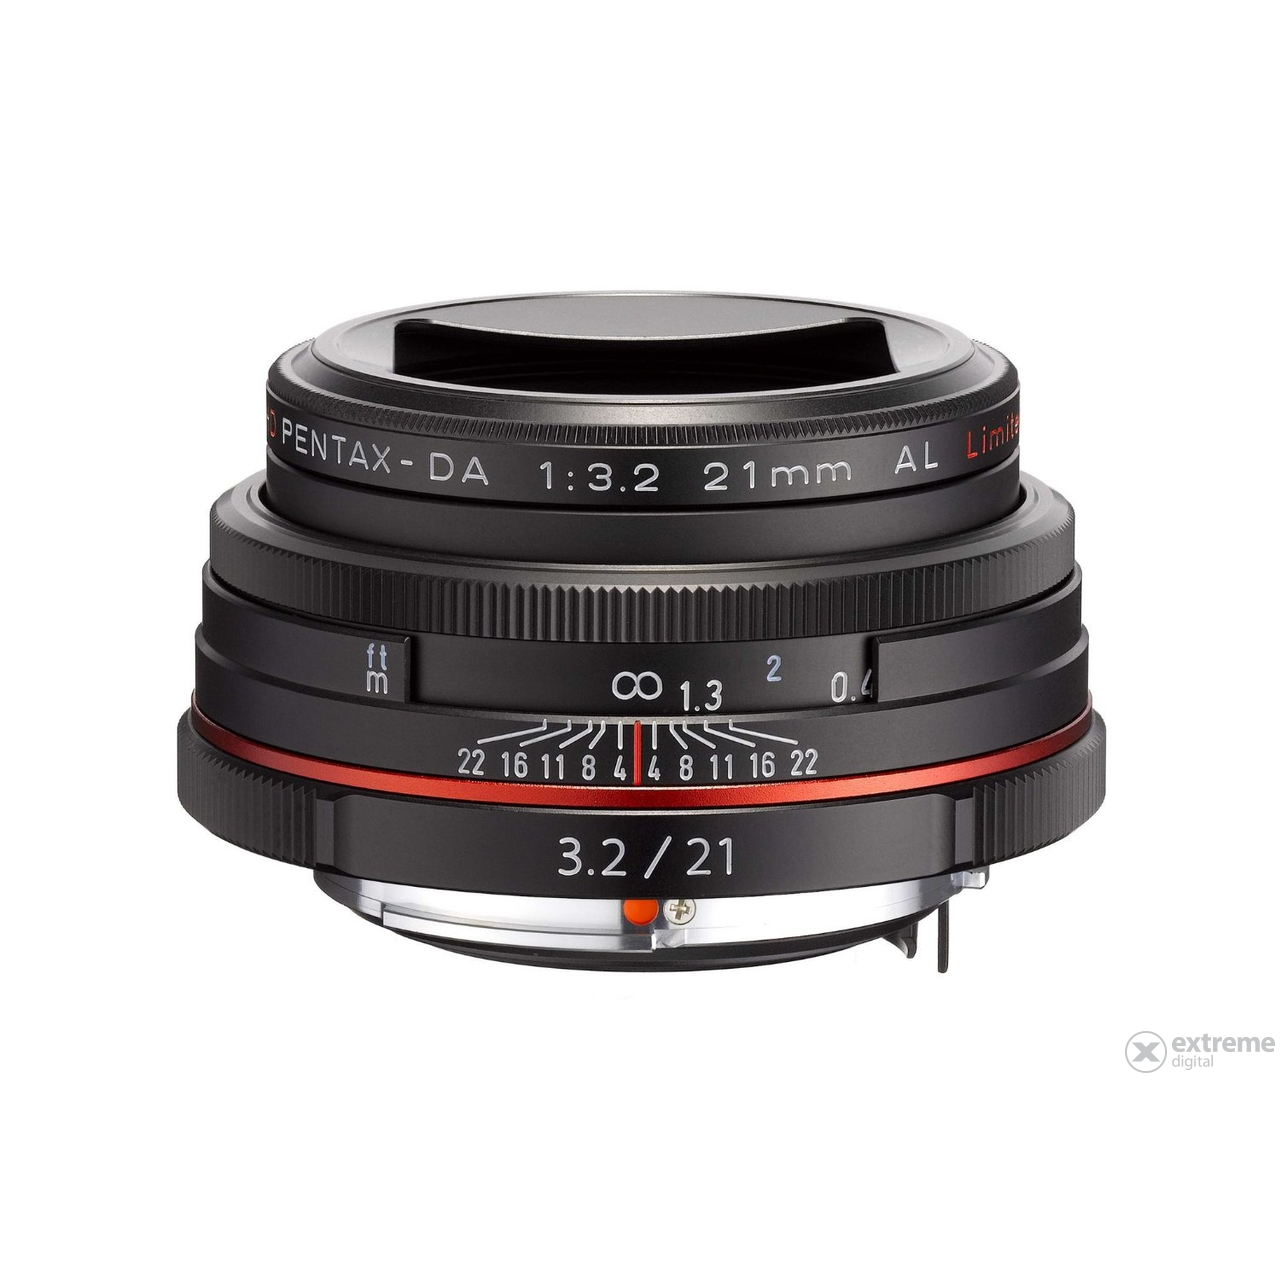 Pentax HD DA 21/F3.2 AL - Limited Edition objektiv